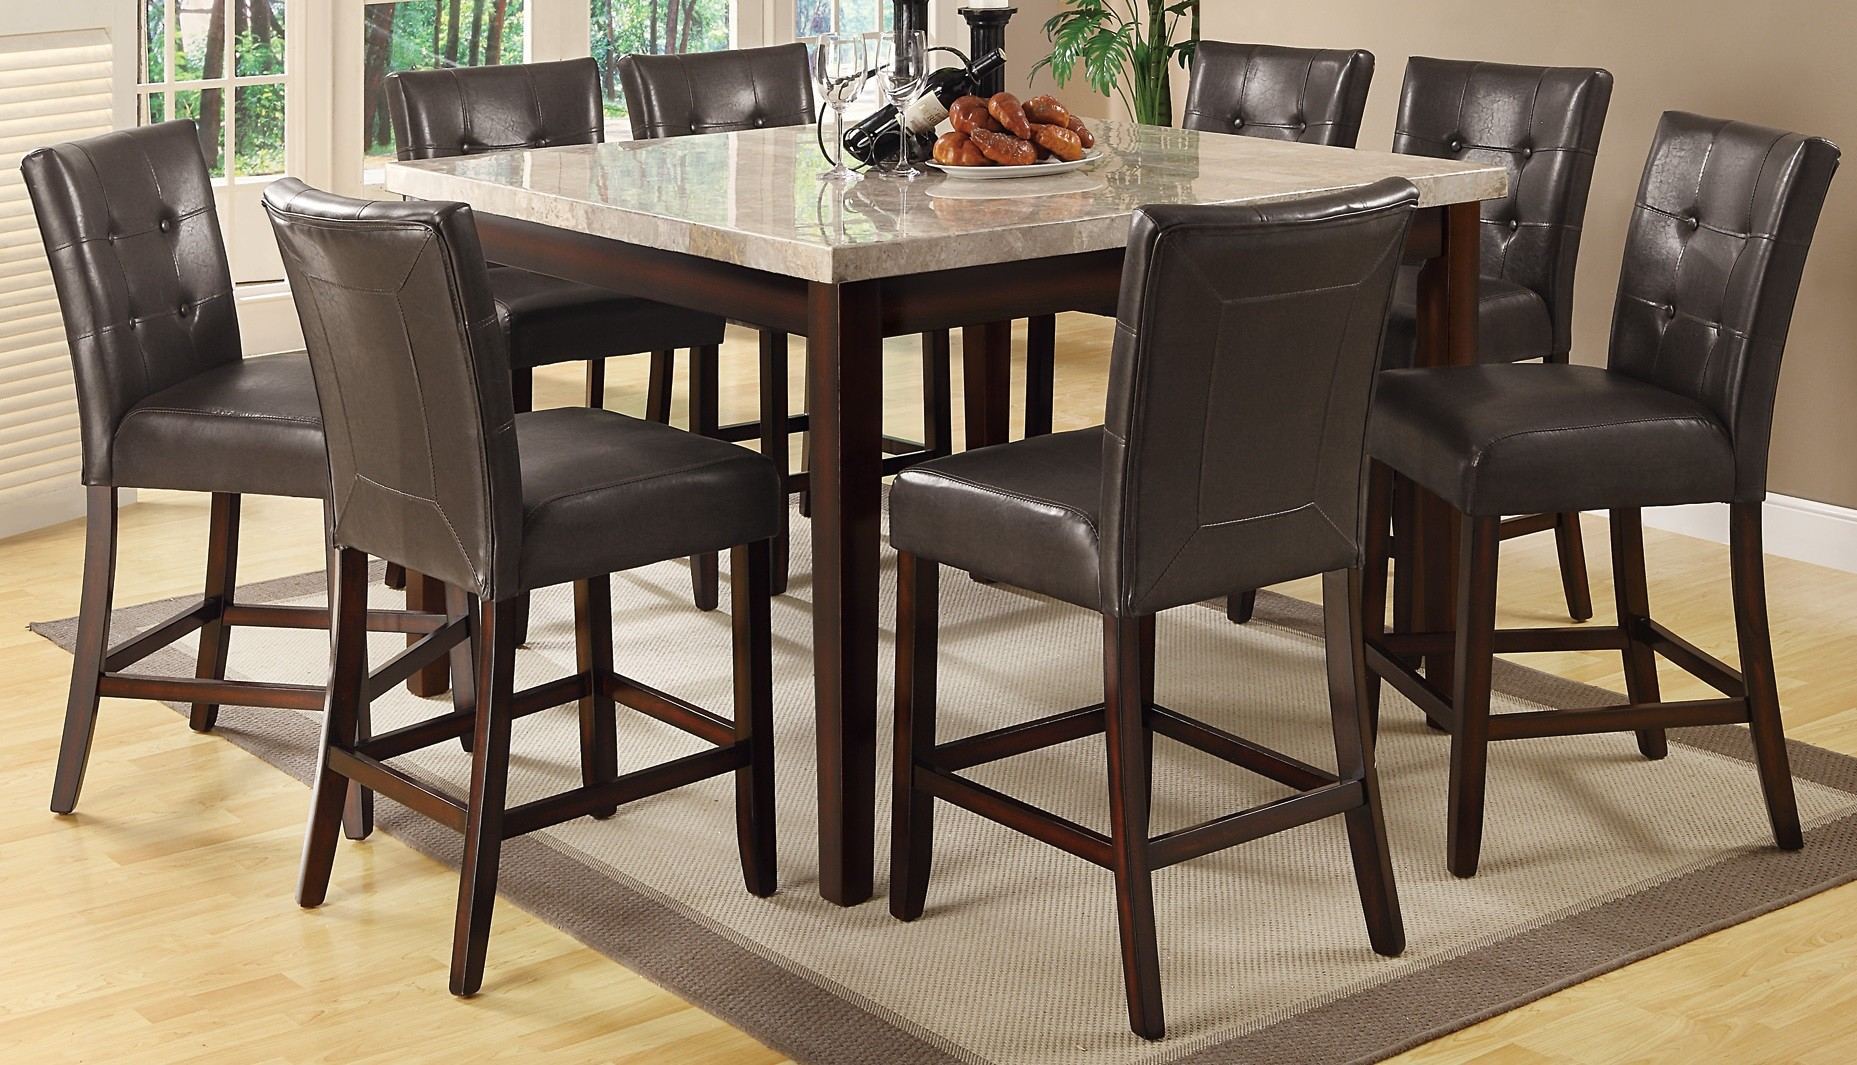 Milton cappuccino counter height dining room set from for Counter height dining room sets